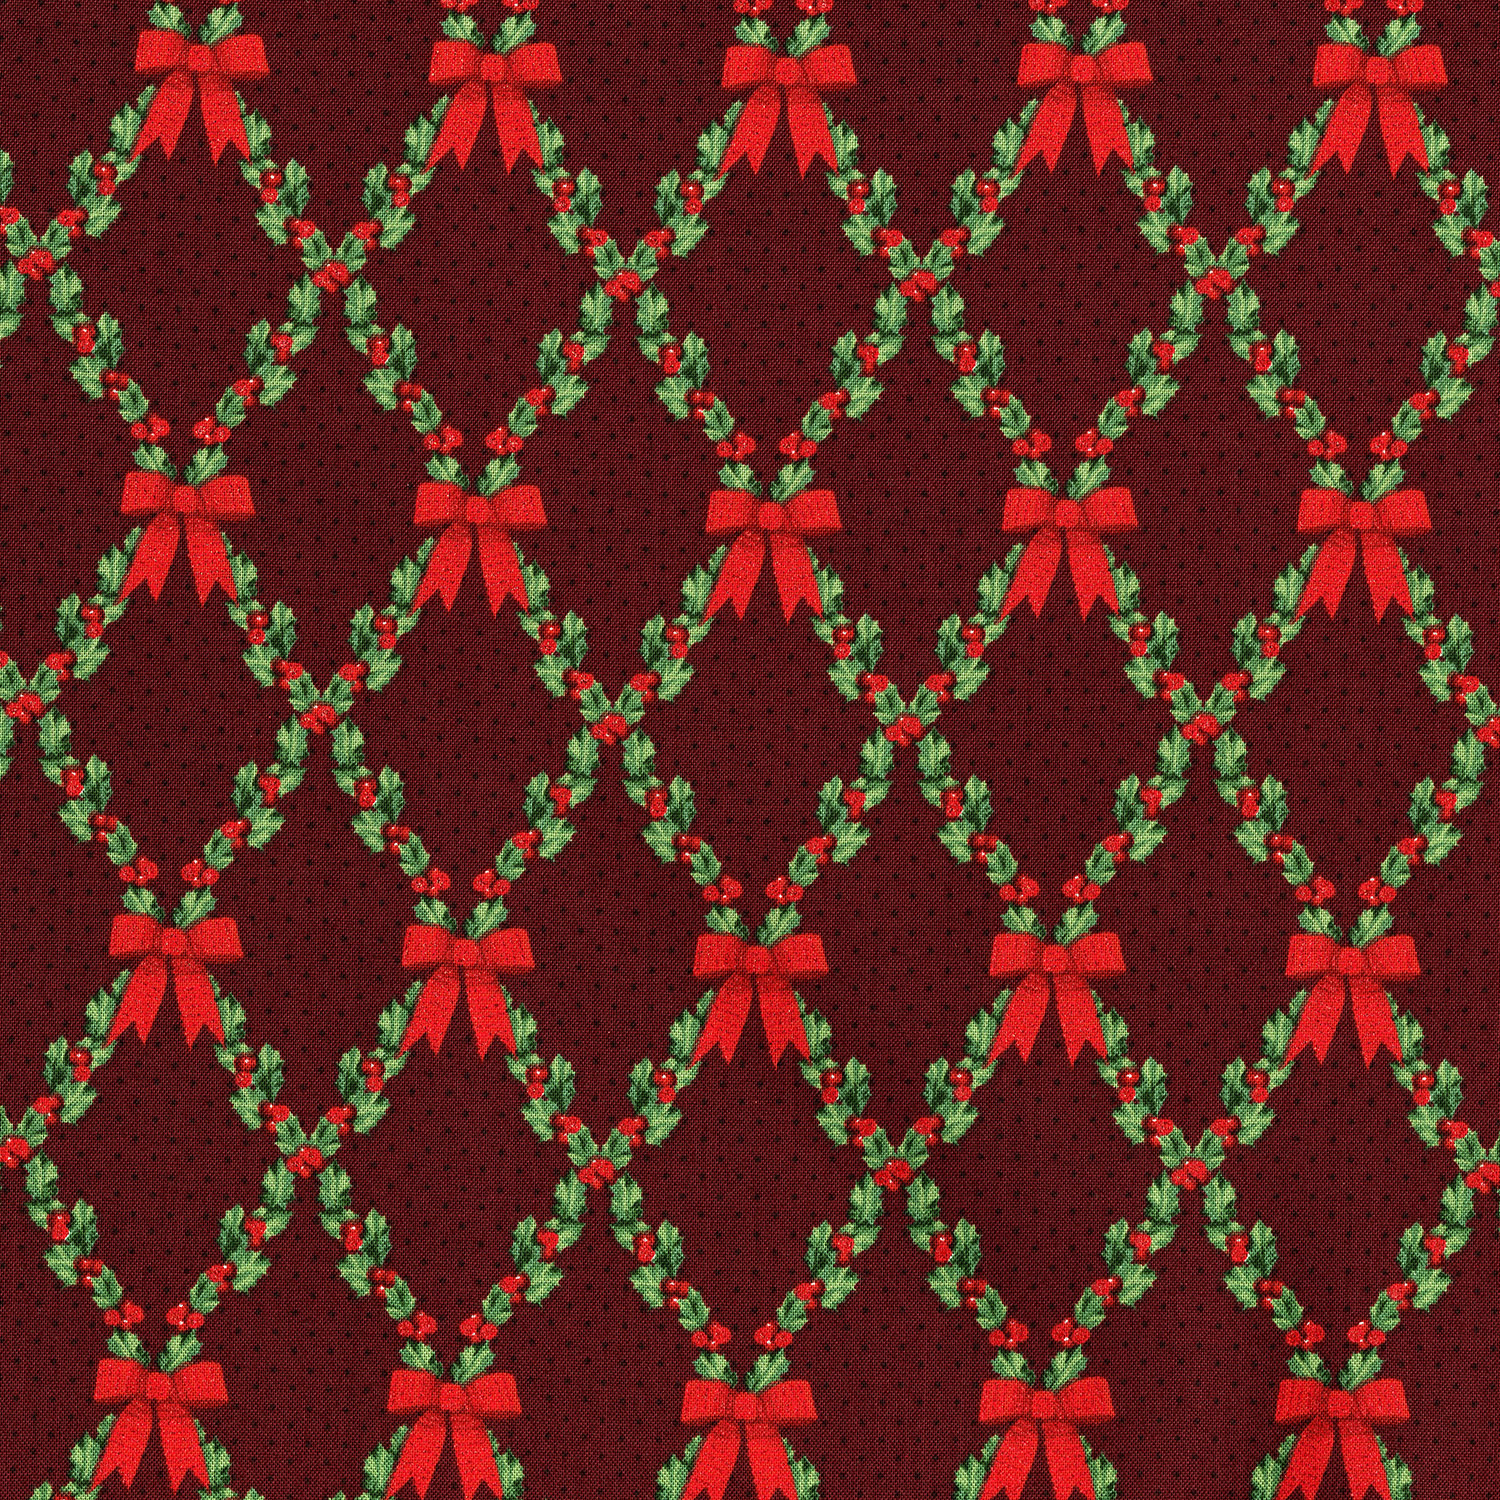 3490-001 BOWS AND HOLLY-RADIANT CRIMSON